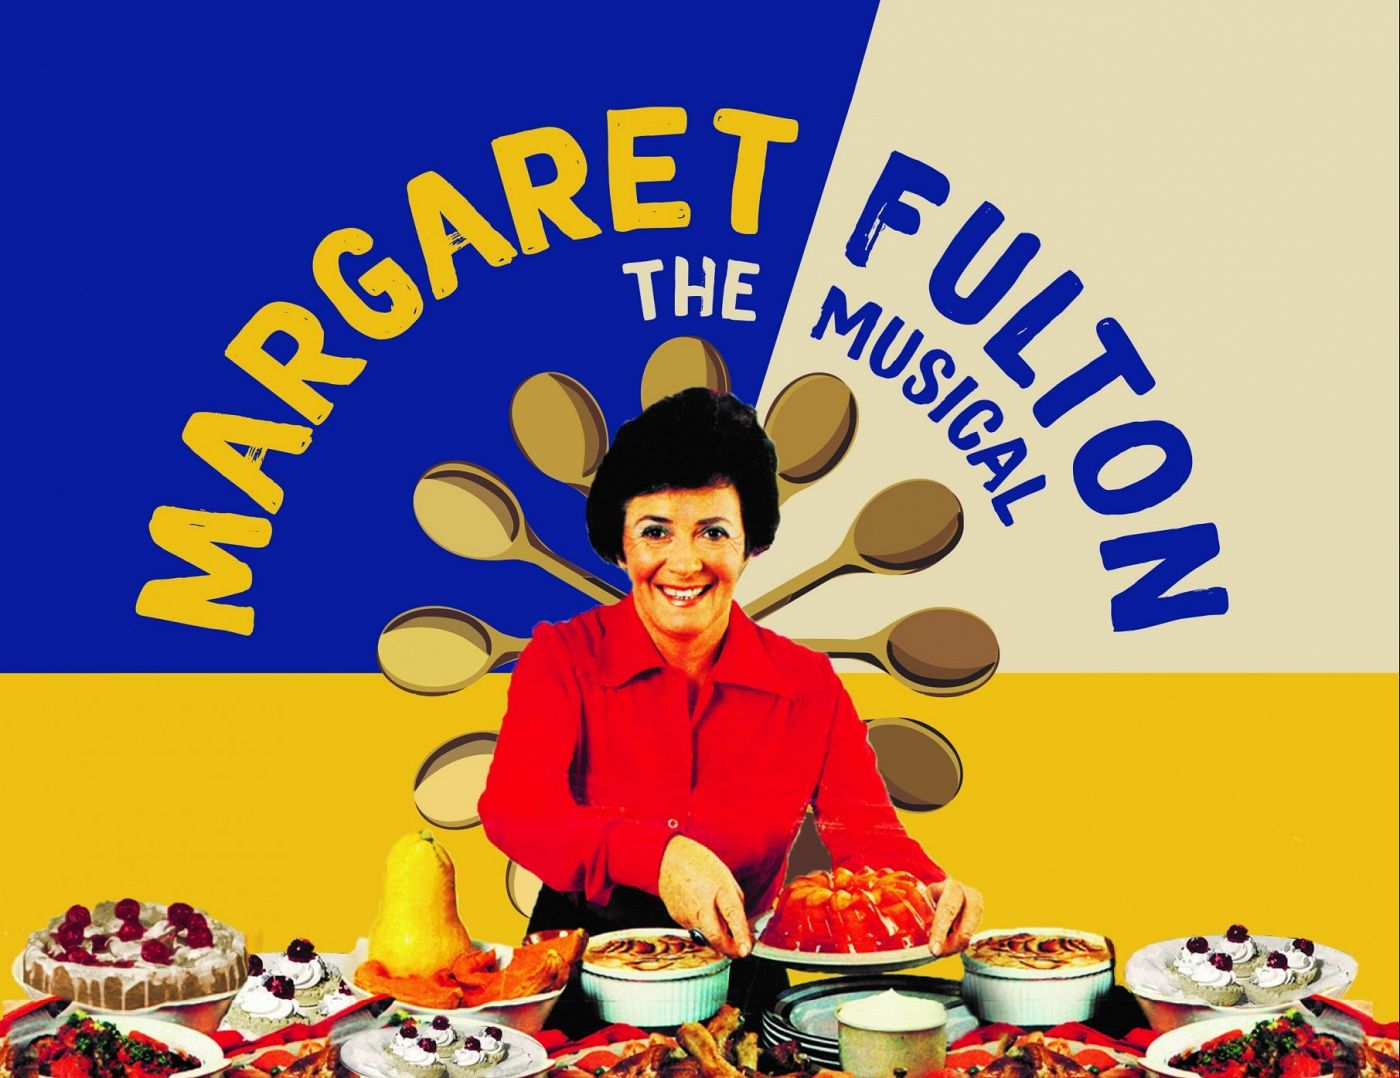 Margaret Fulton The Musical